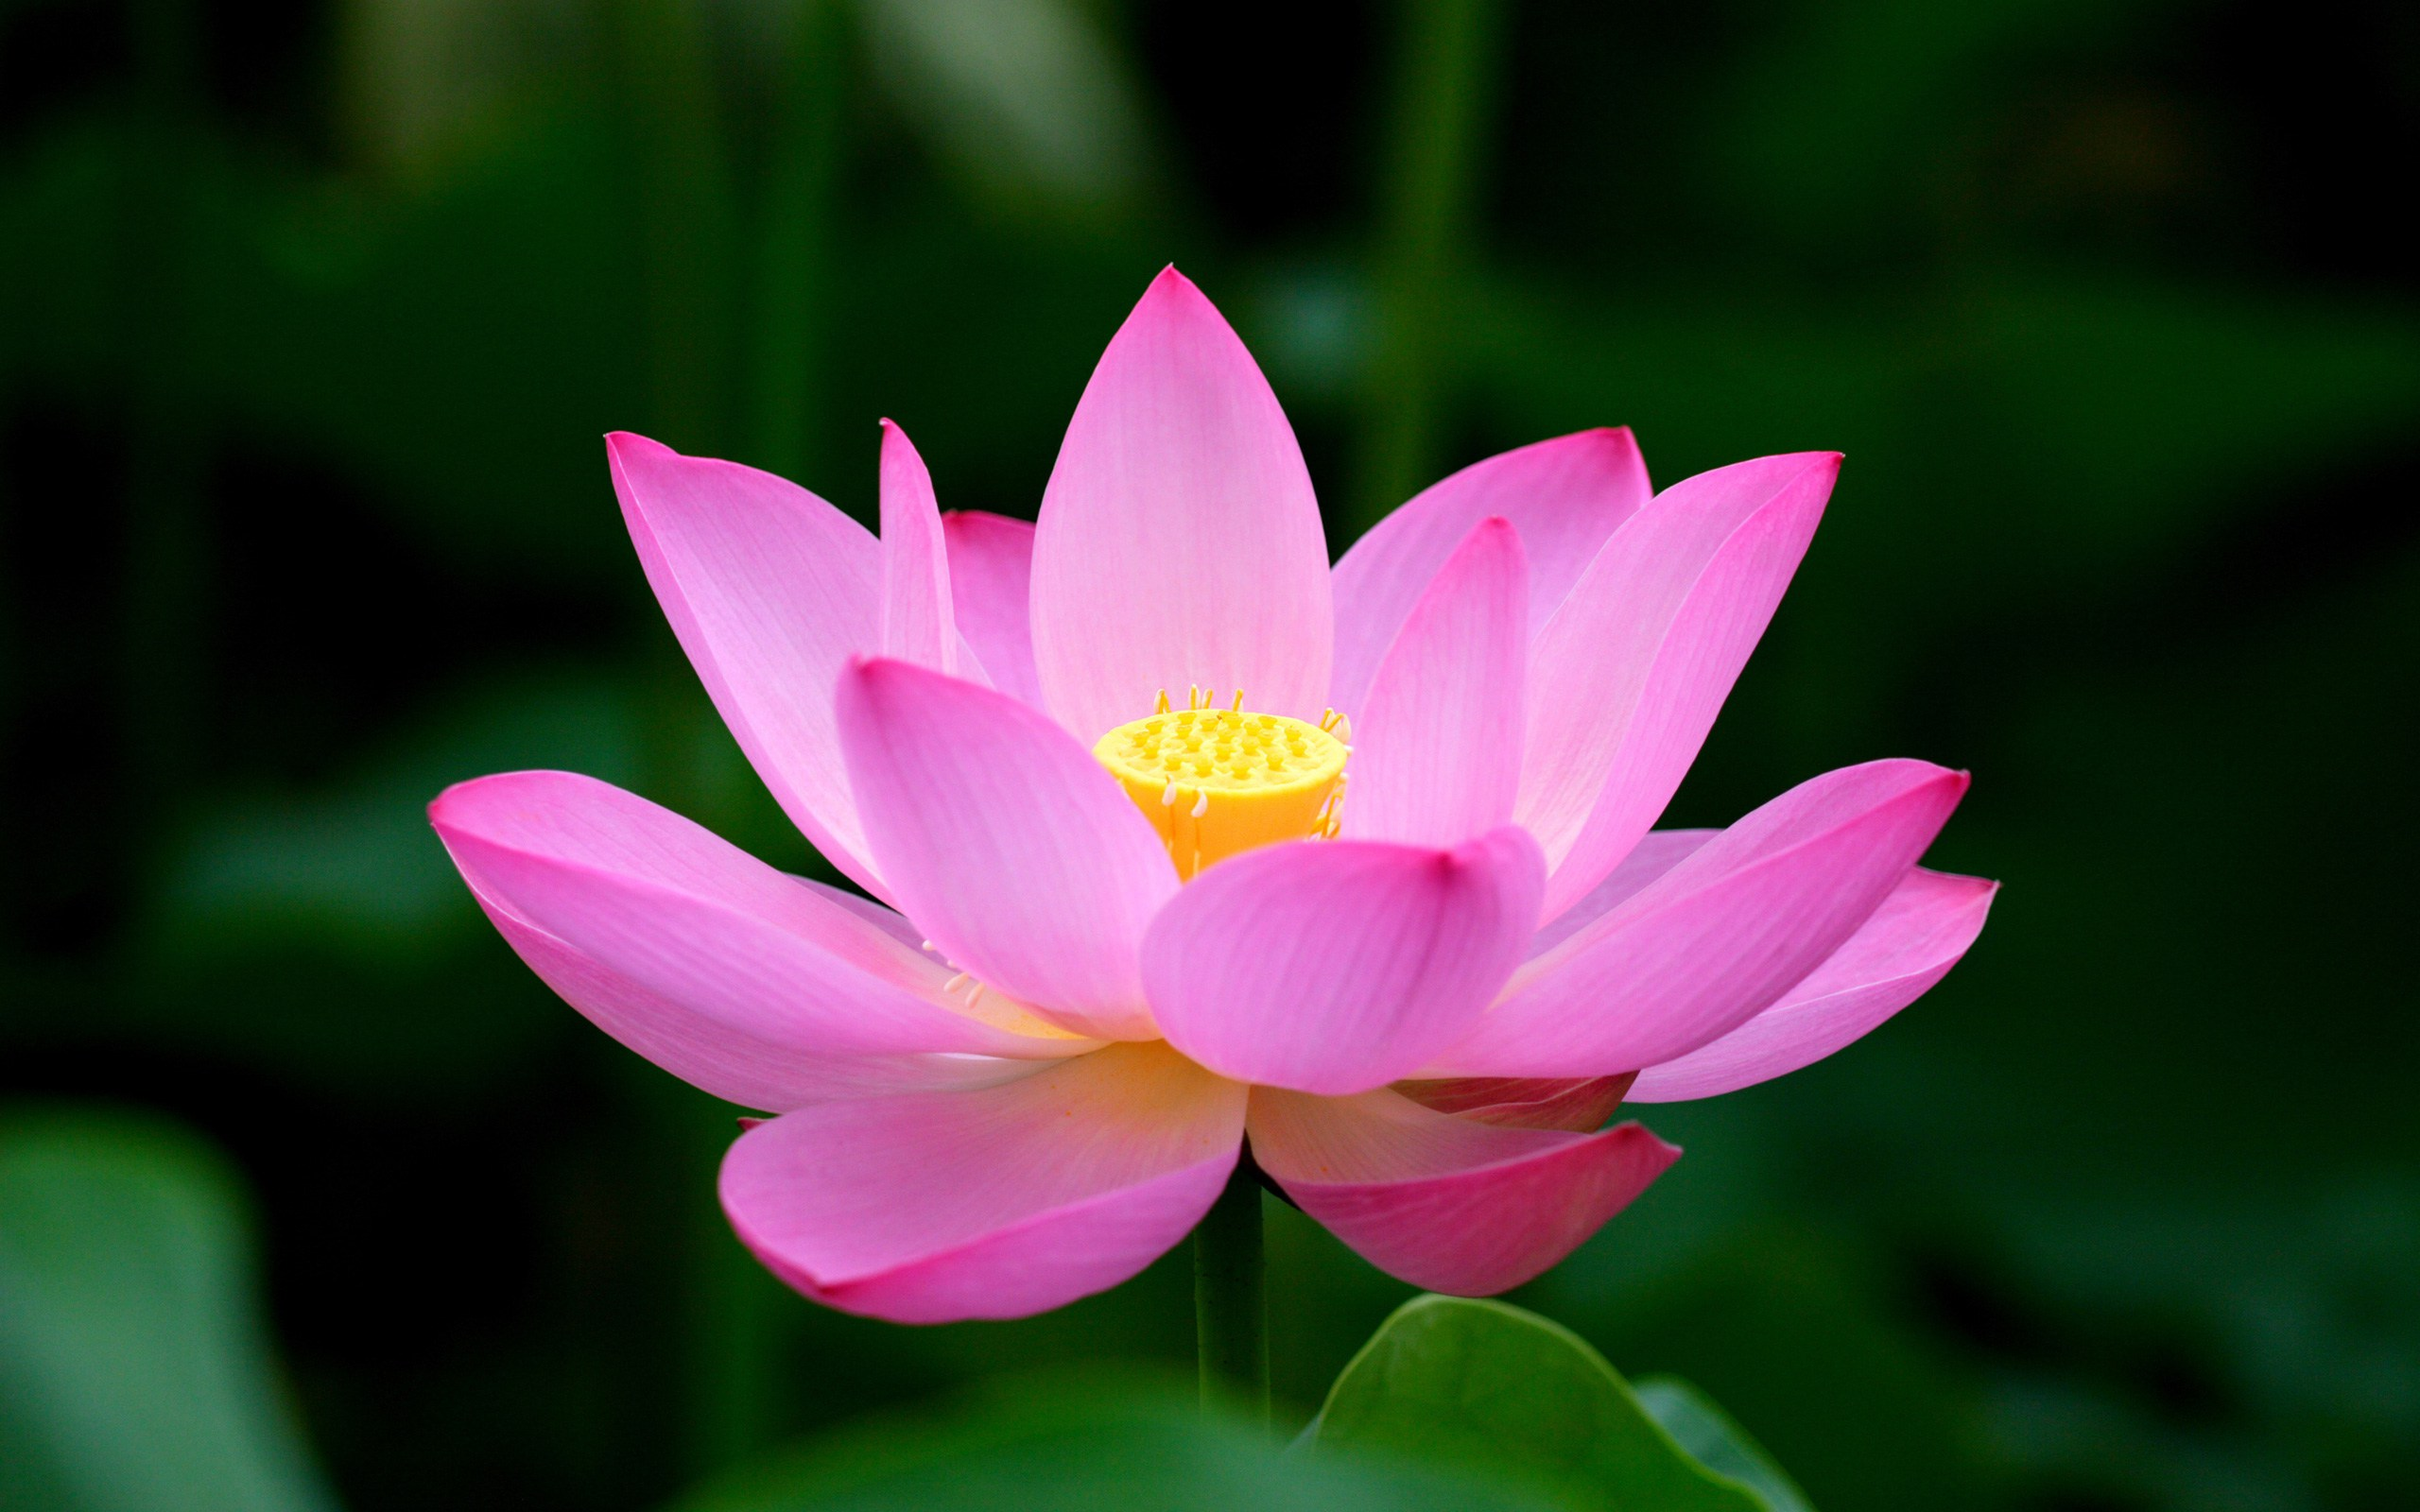 Lotus flower meaning and symbolism mythologian lotus flower meaning and symbolism izmirmasajfo